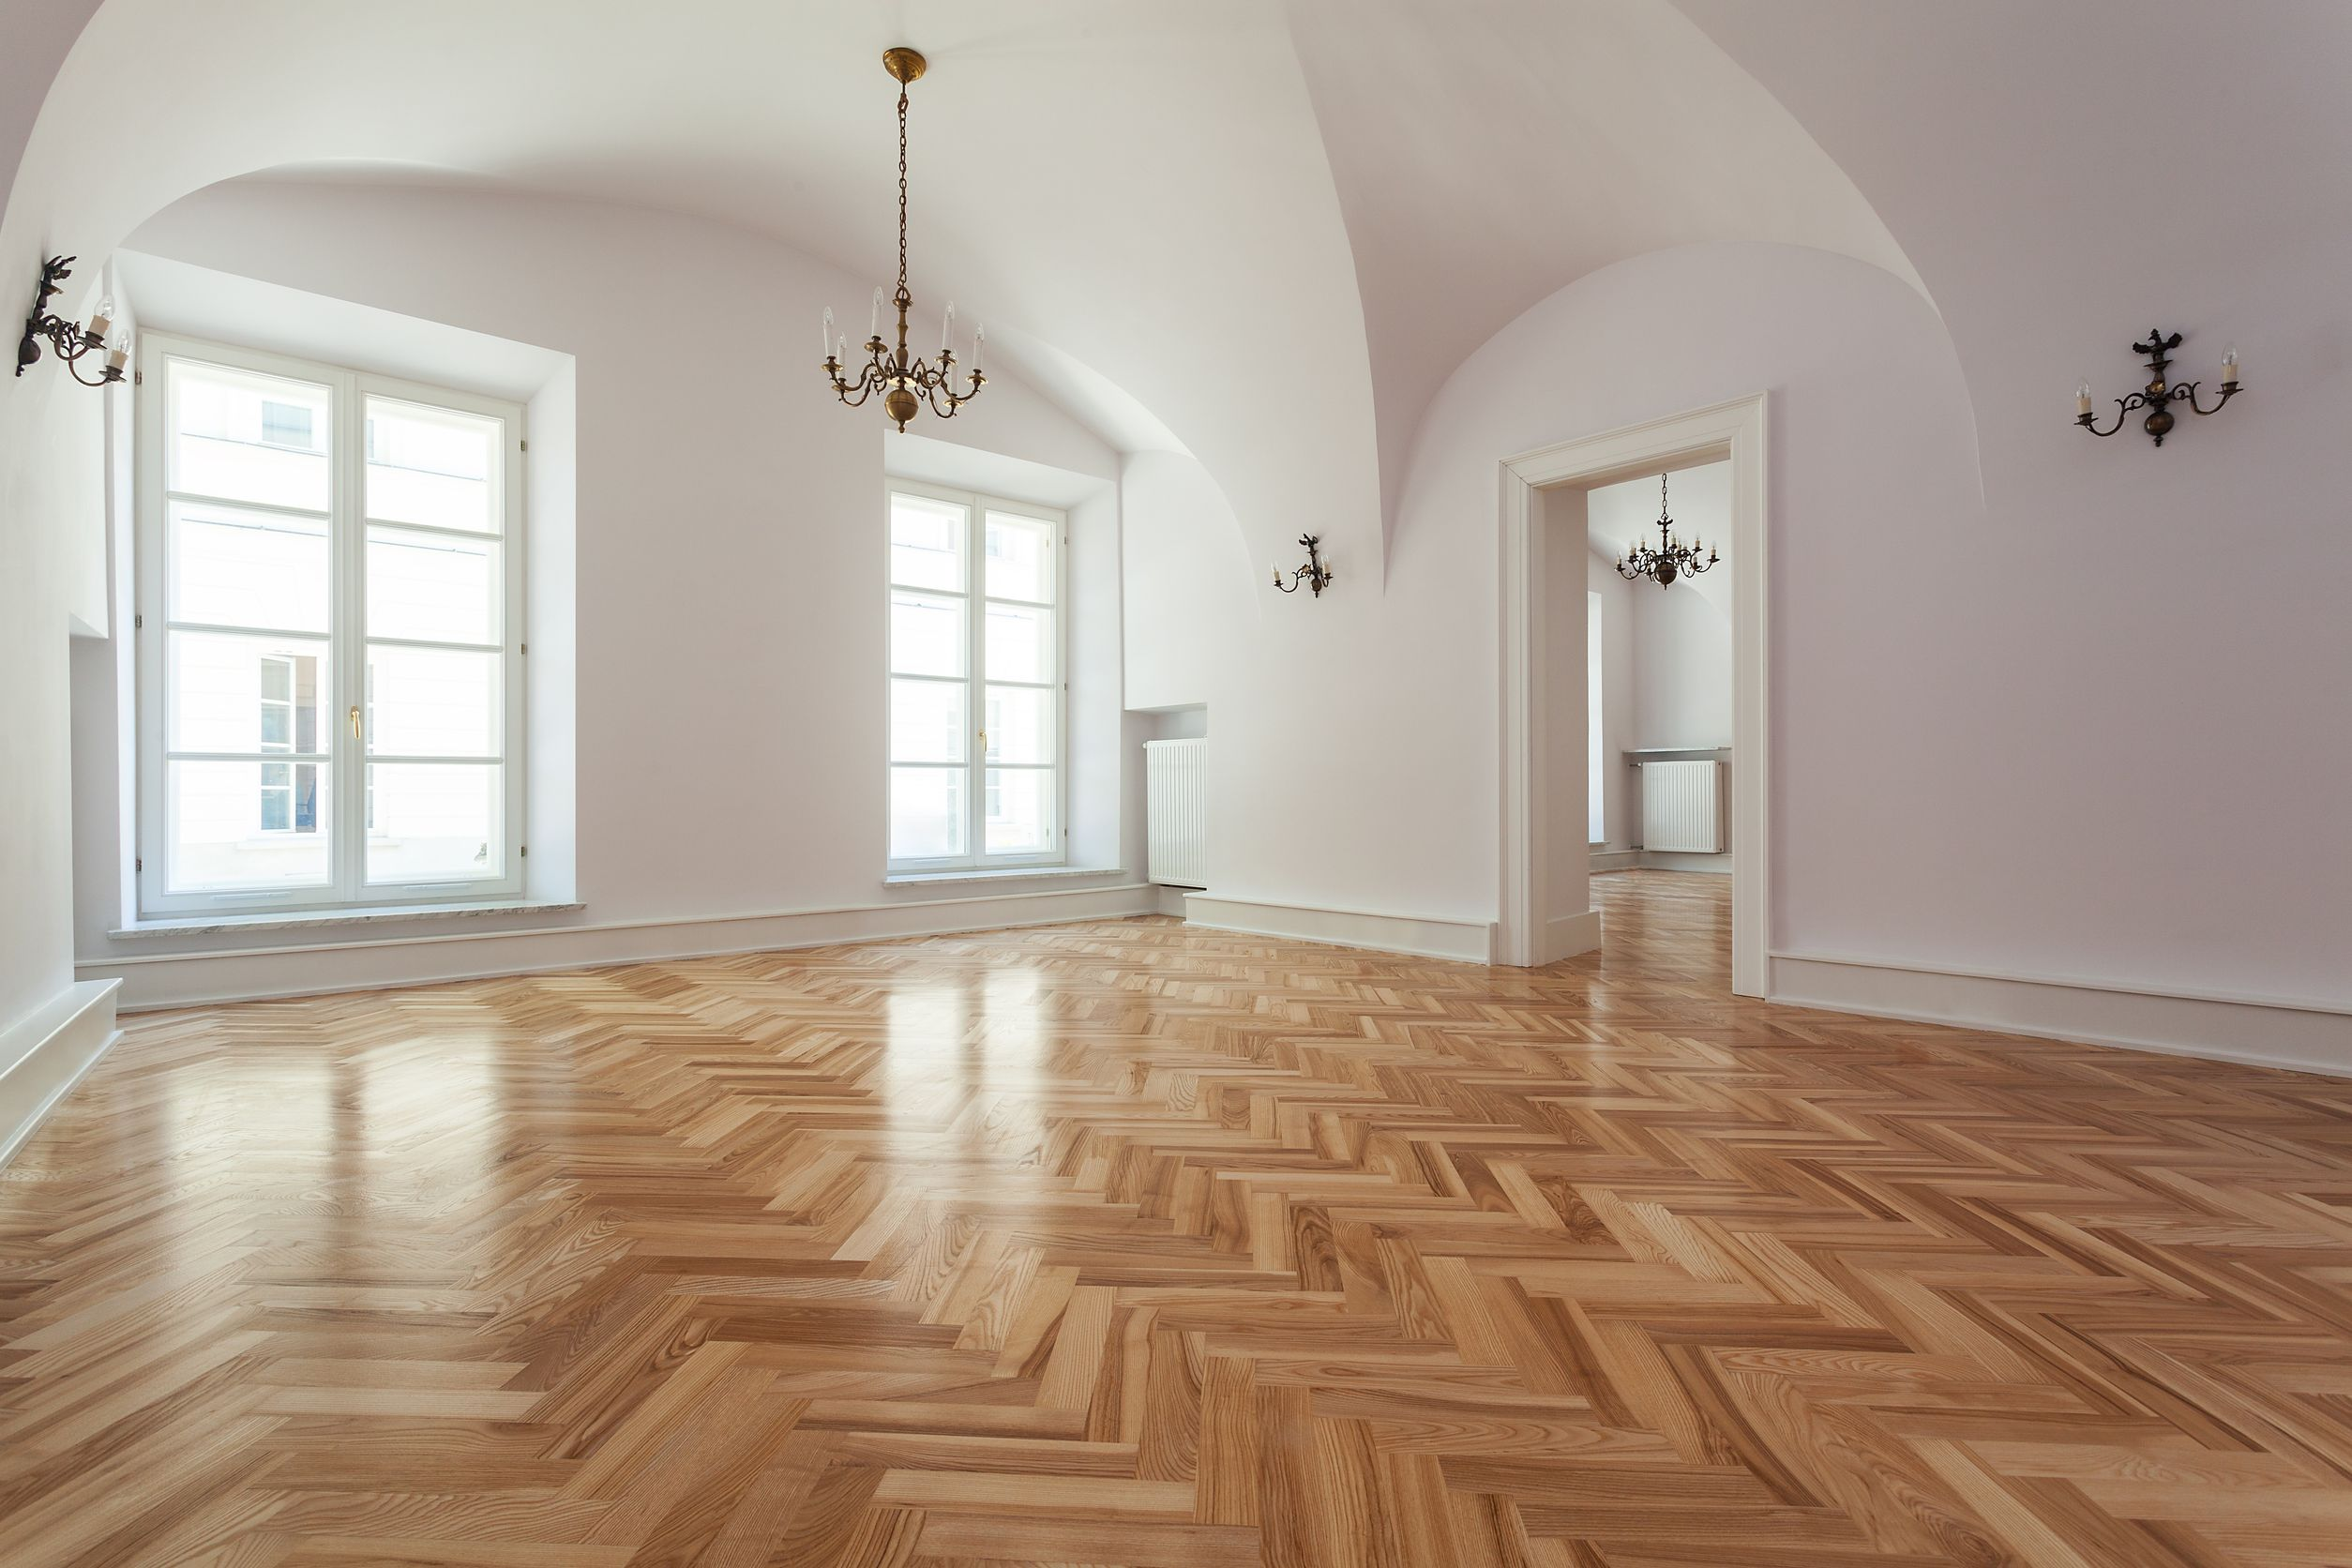 Why Choose Parquet Flooring And How To Install It WoodFloorDoctorcom - What to do with parquet flooring